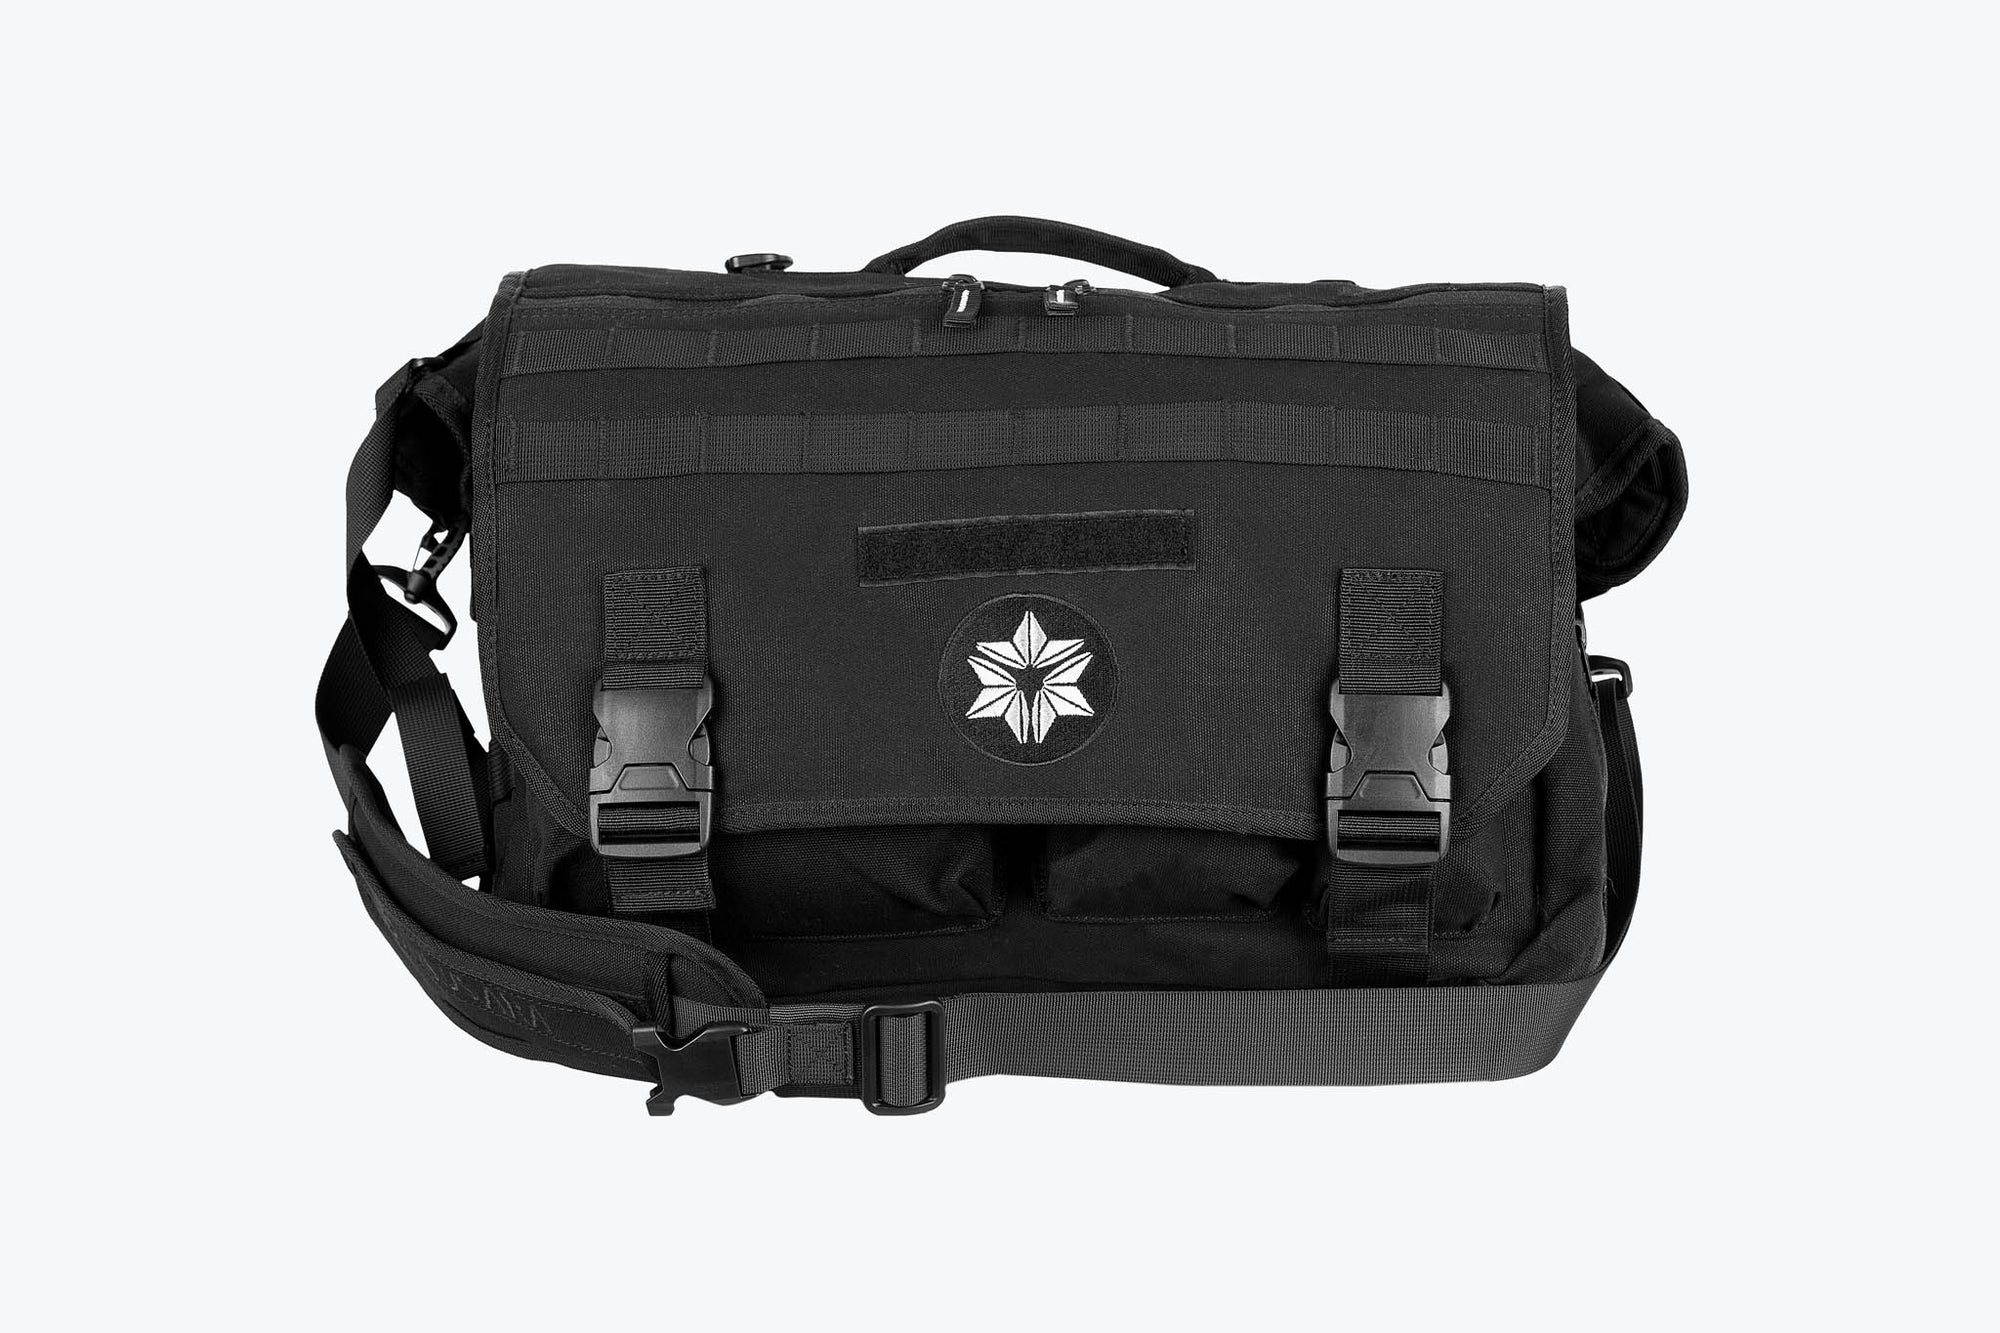 Covert Emissary Bag